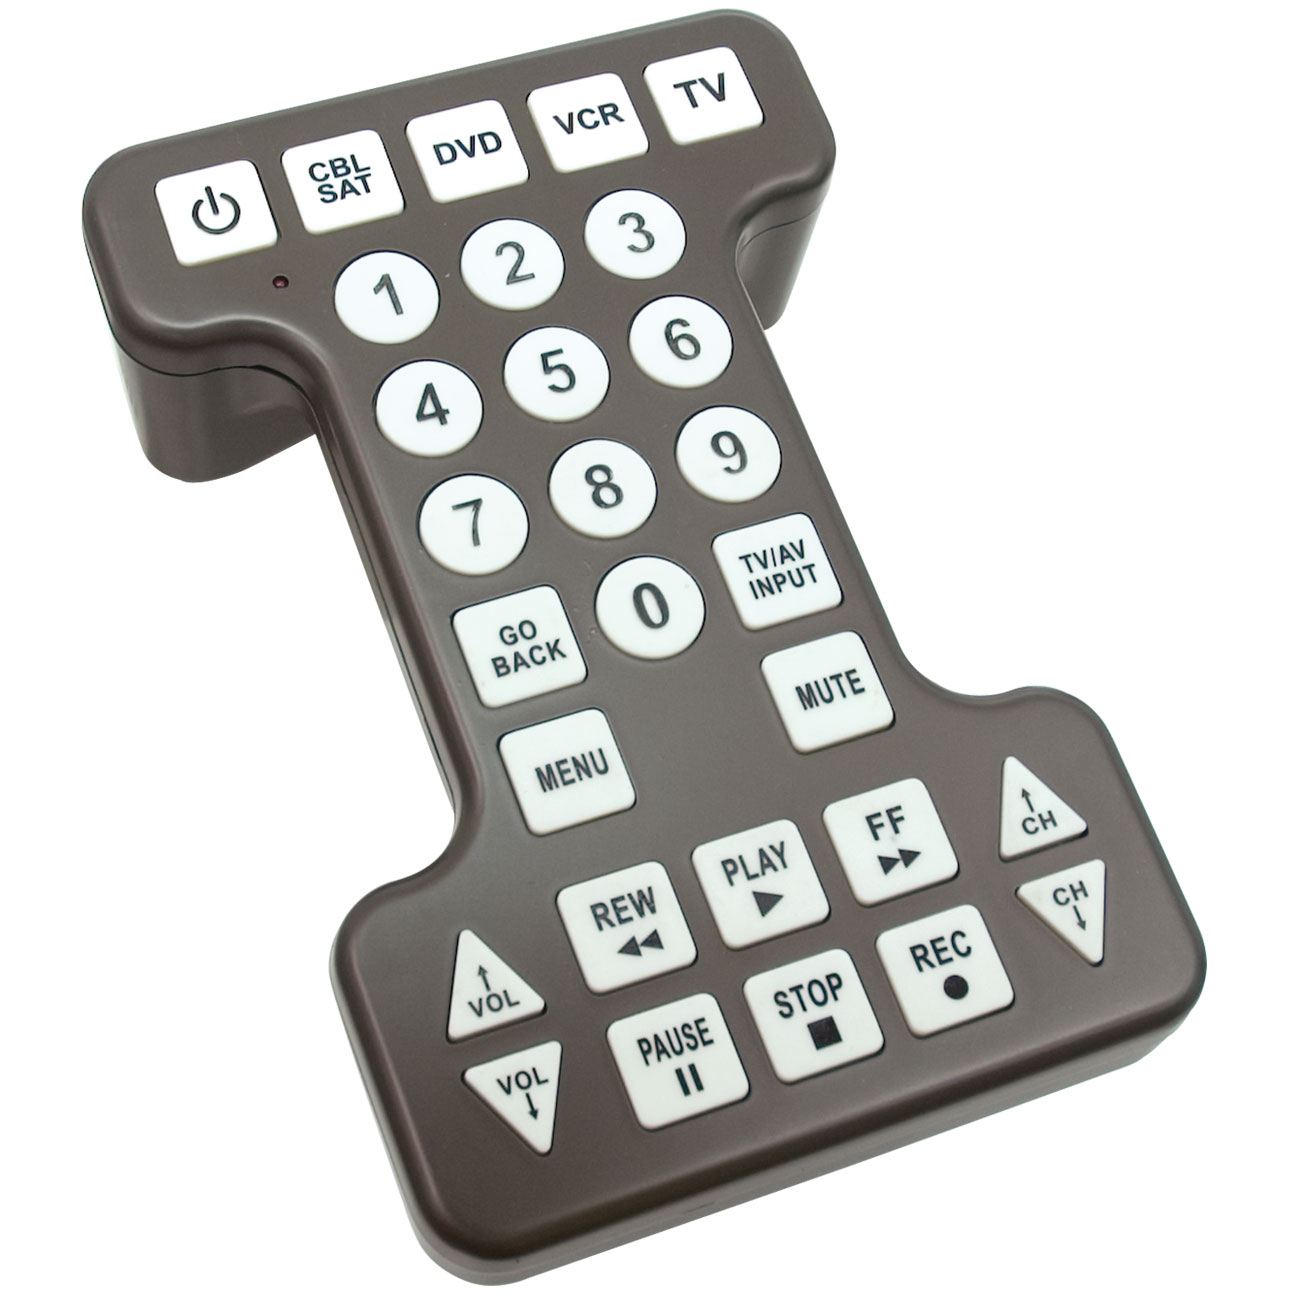 Reizen Jumbo Remote Control for the Visually Impaired